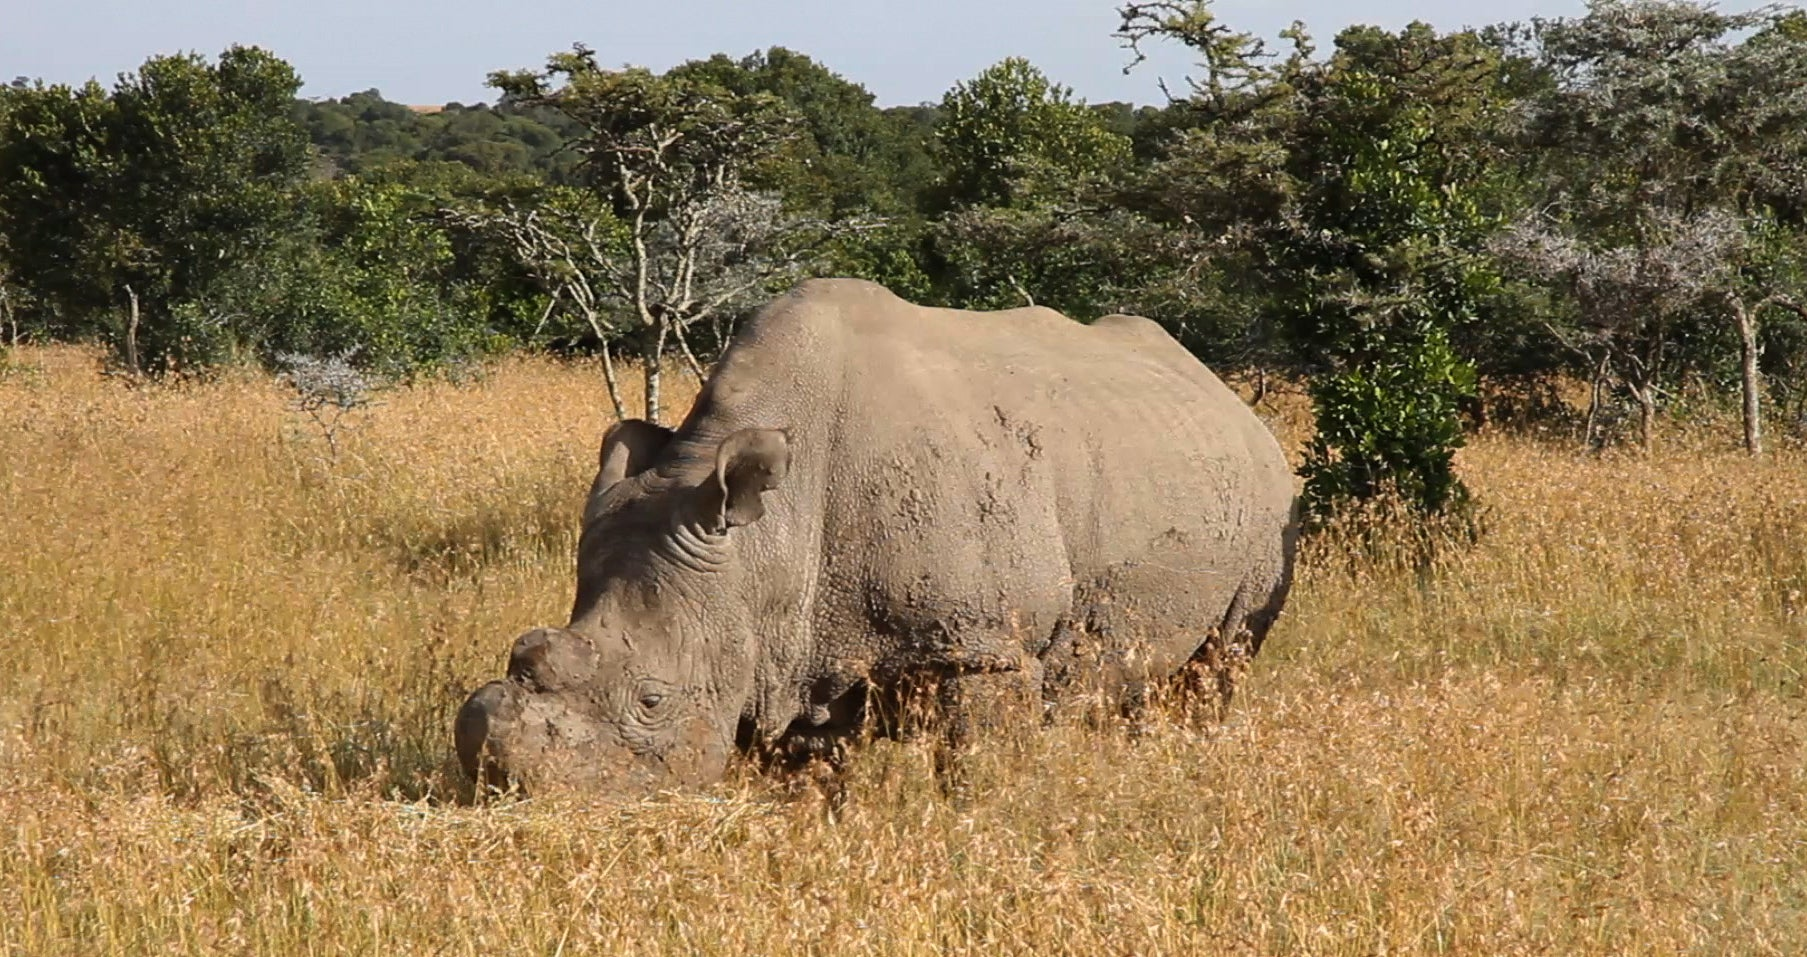 Scientists Have an Insane Plan to Stop These Rhinos From Going Extinct